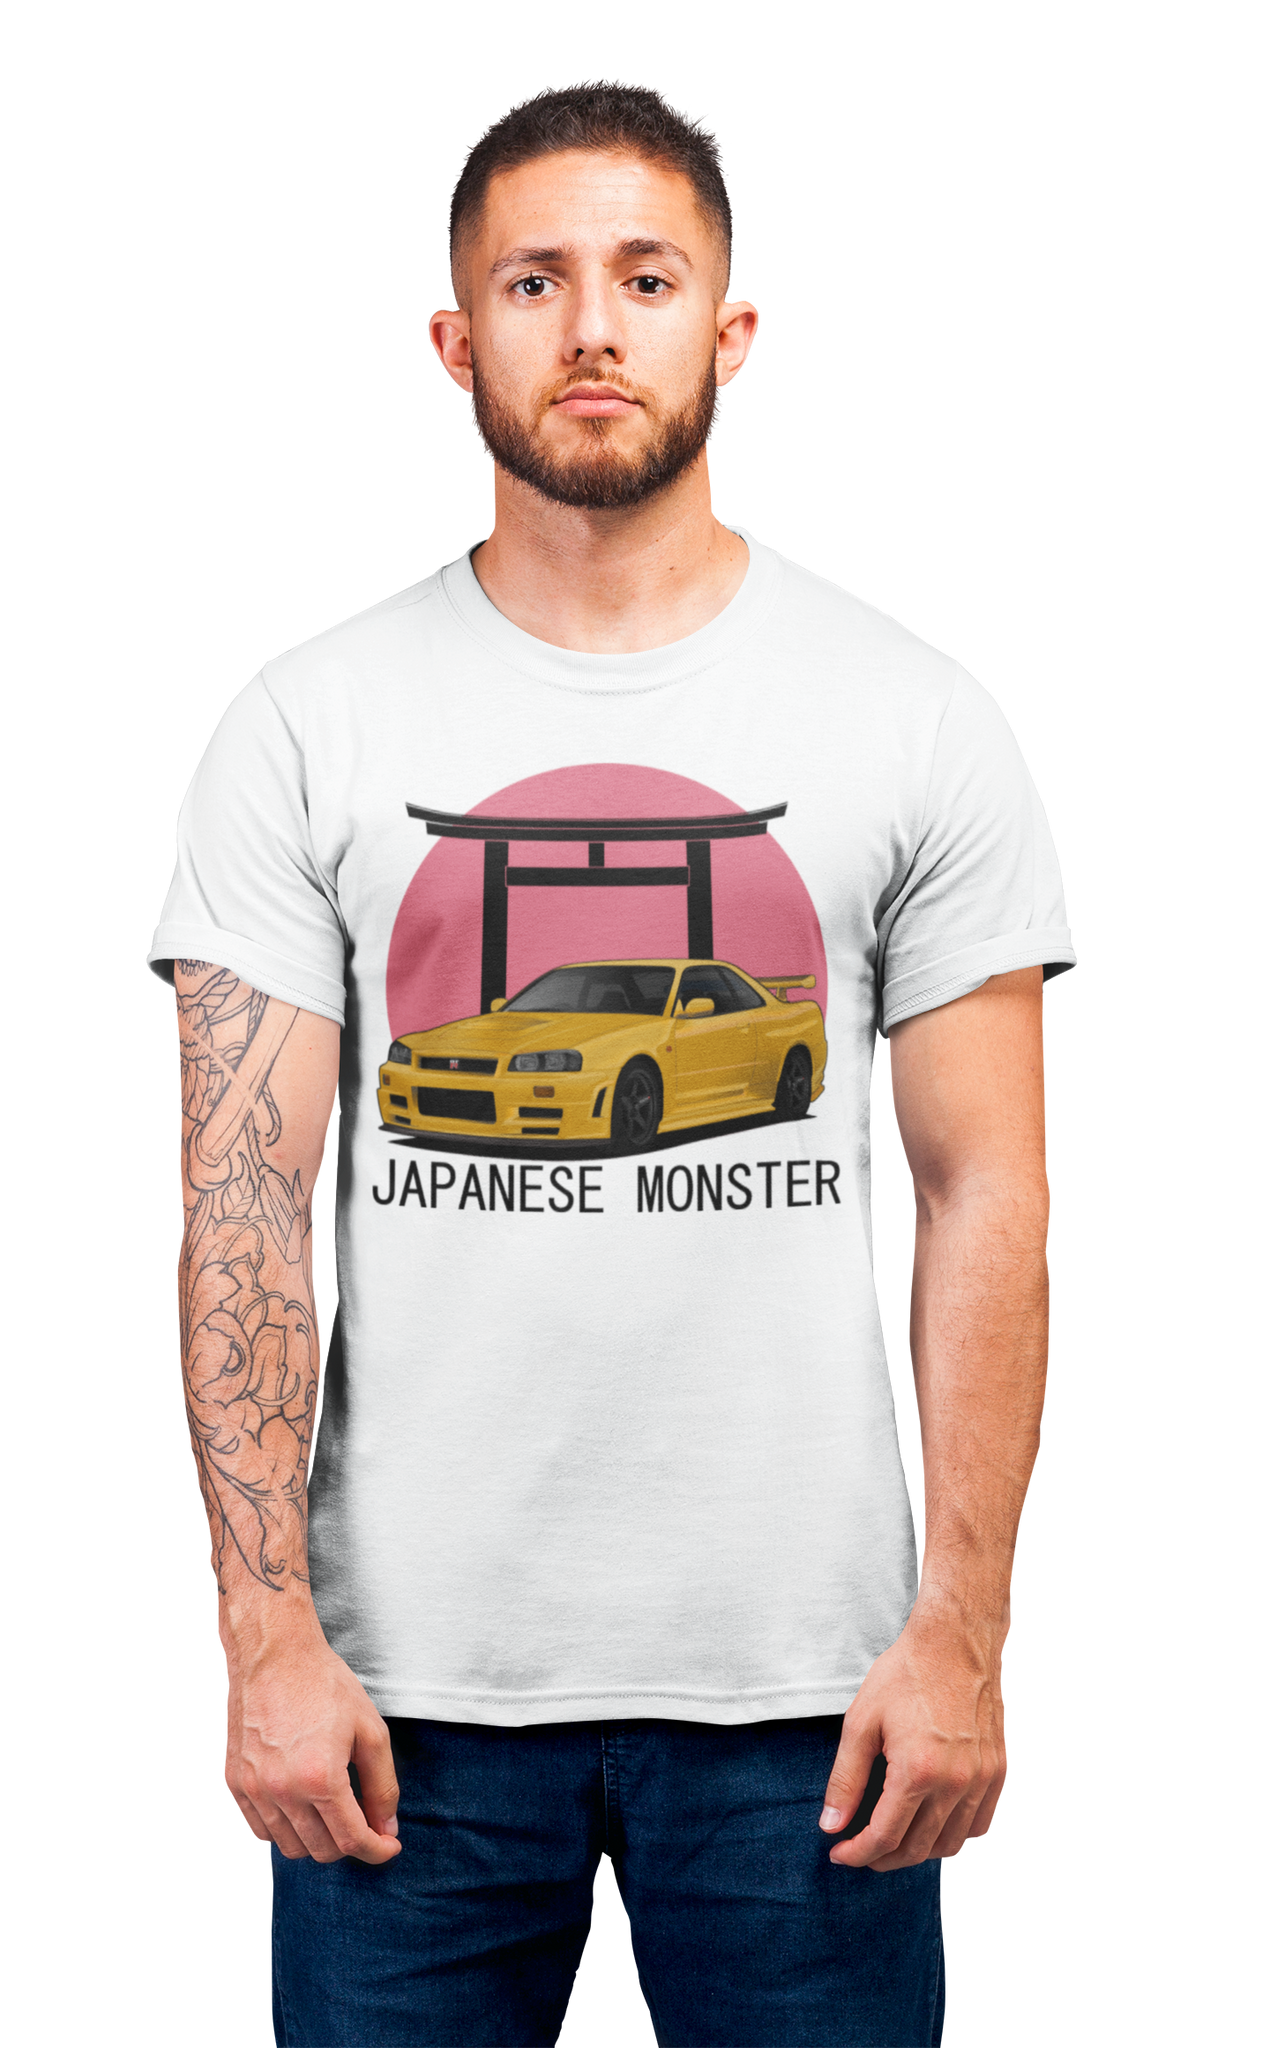 Japanese Monster T-Shirt